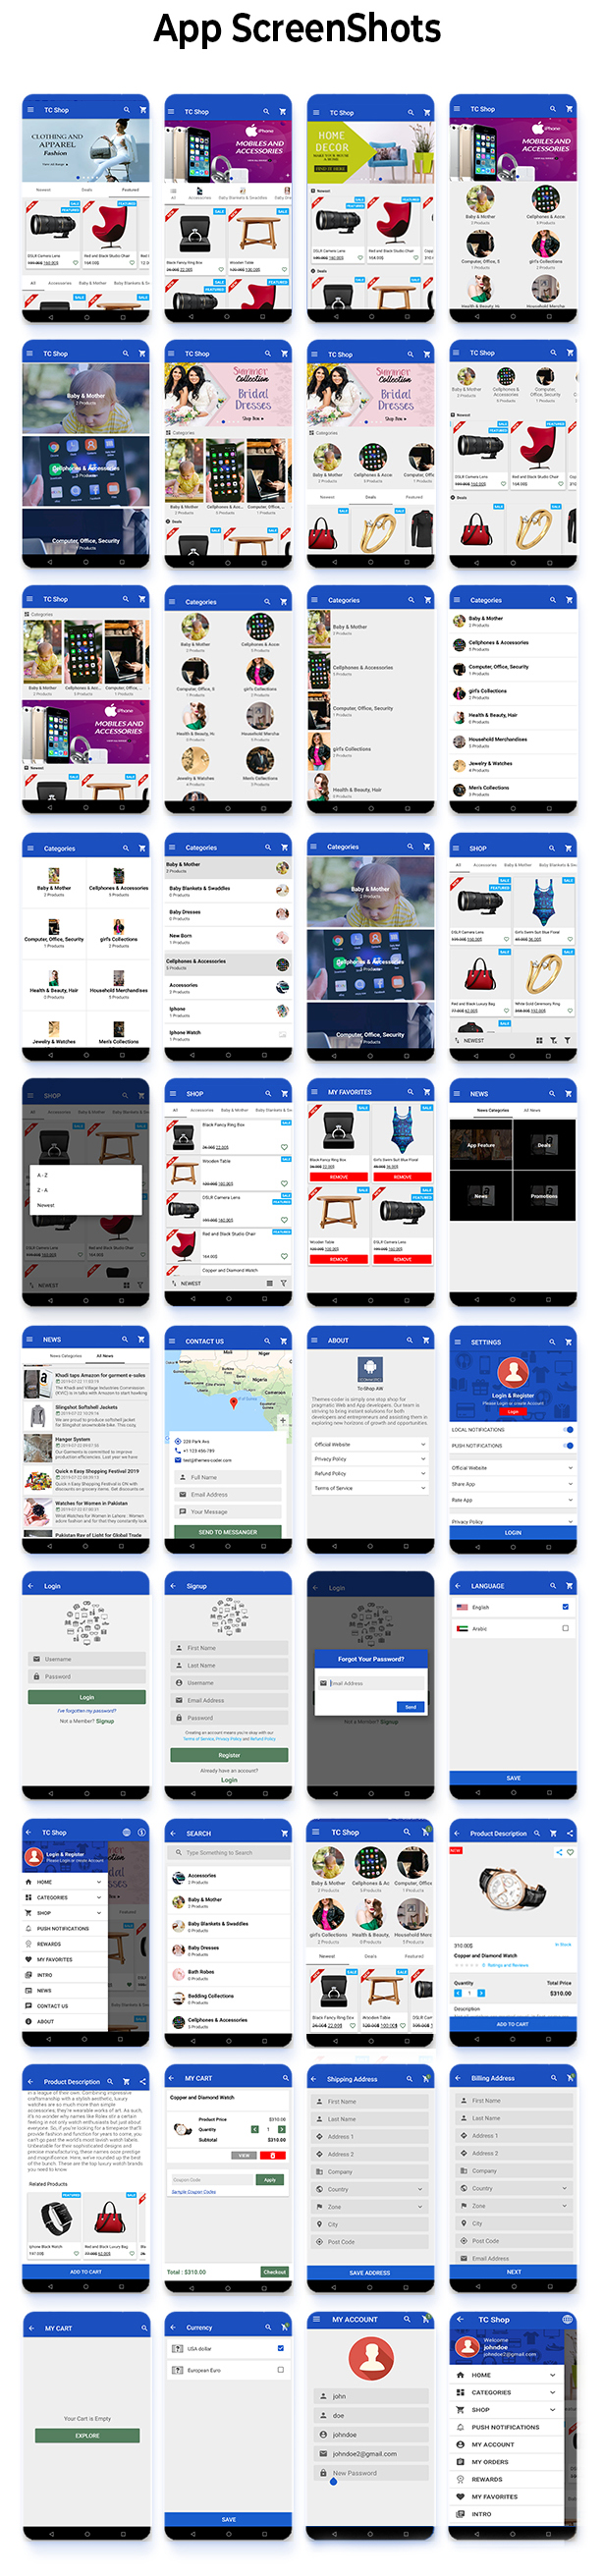 Android Woocommerce - Universal Native Android Ecommerce / Store Full Mobile Application - 8